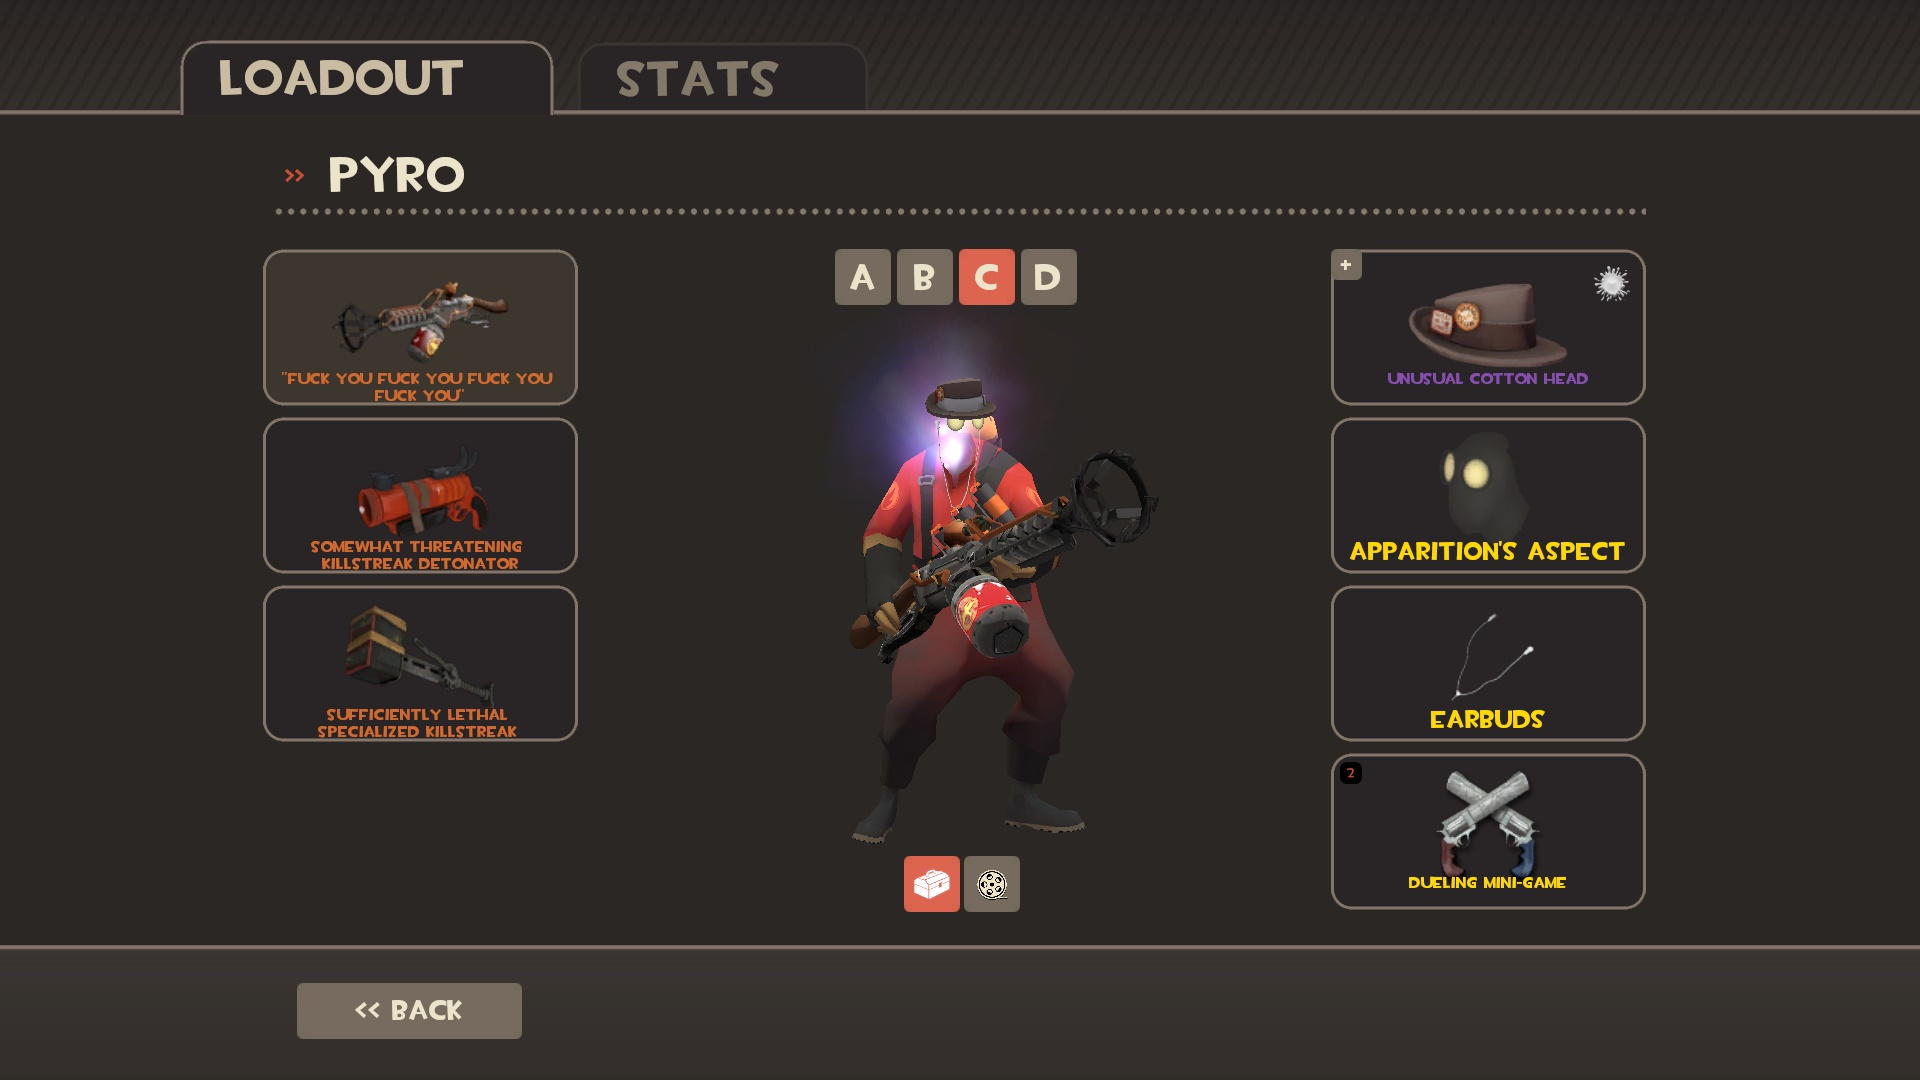 Tf2 soldier cosmetics quotes - Tf2 Soldier Cosmetics Quotes 23